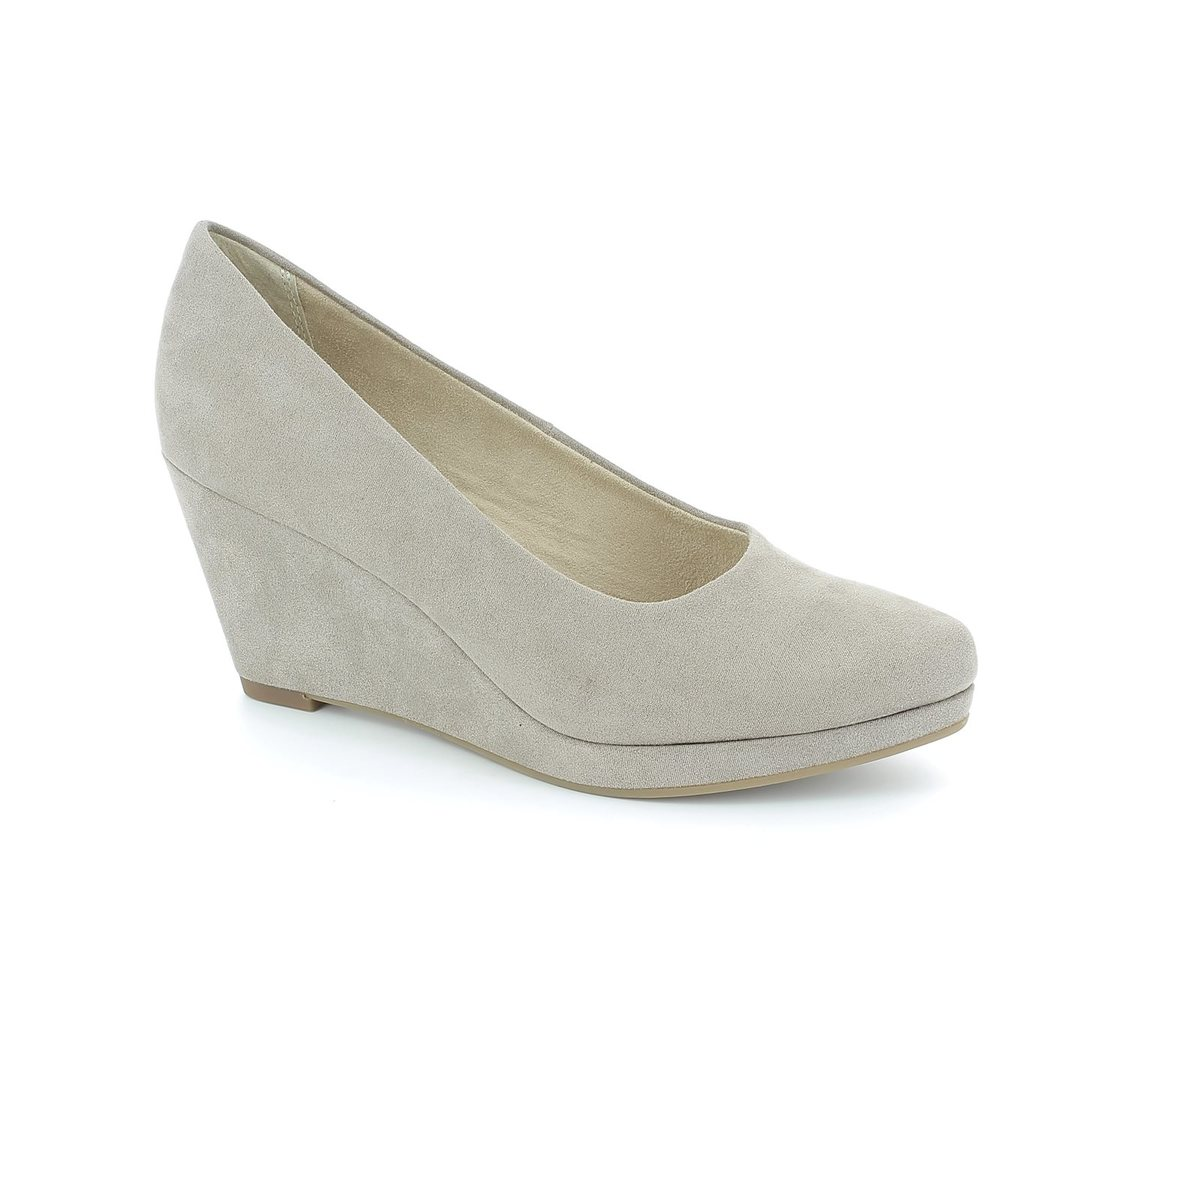 2398a308020e Tamaris Wedge Shoes - Light taupe - 22434 324 ROSSI